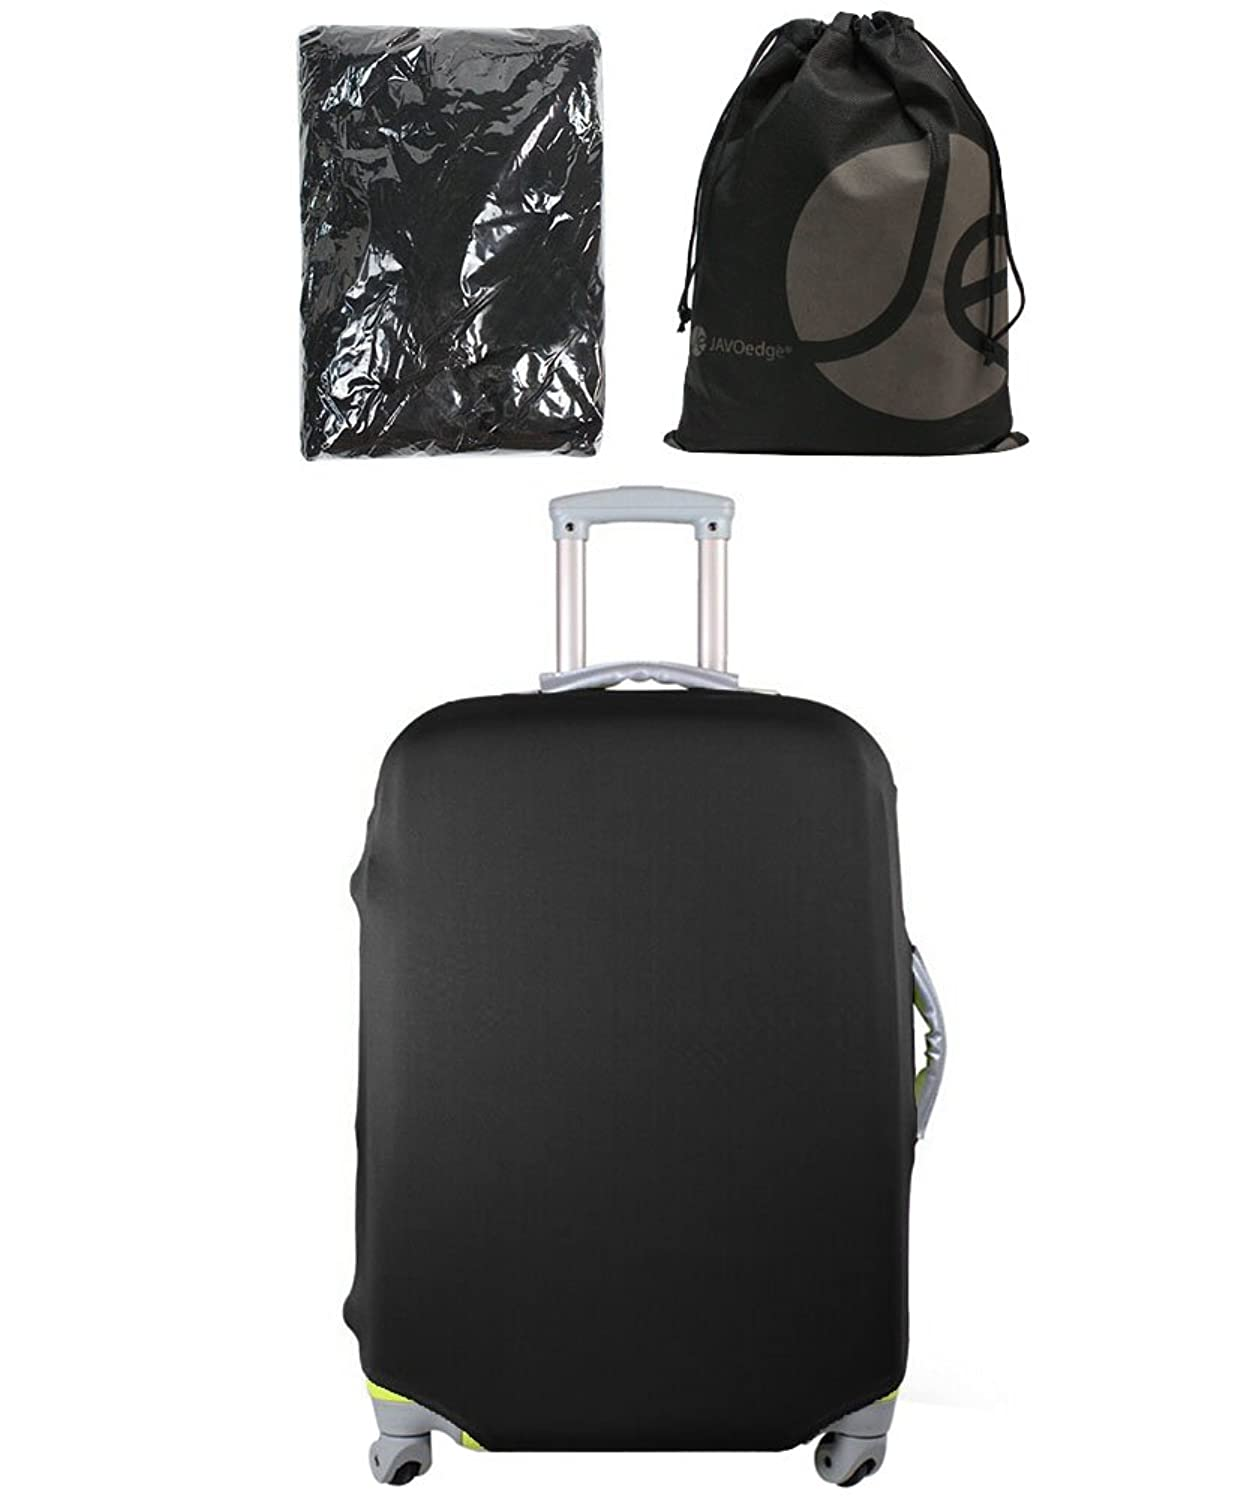 High Quality Amazon.com | Stretch Fabric Luggage Cover. Fits Most Suitcases, With With  Bonus Reusable Storage Bag | Packing Organizers